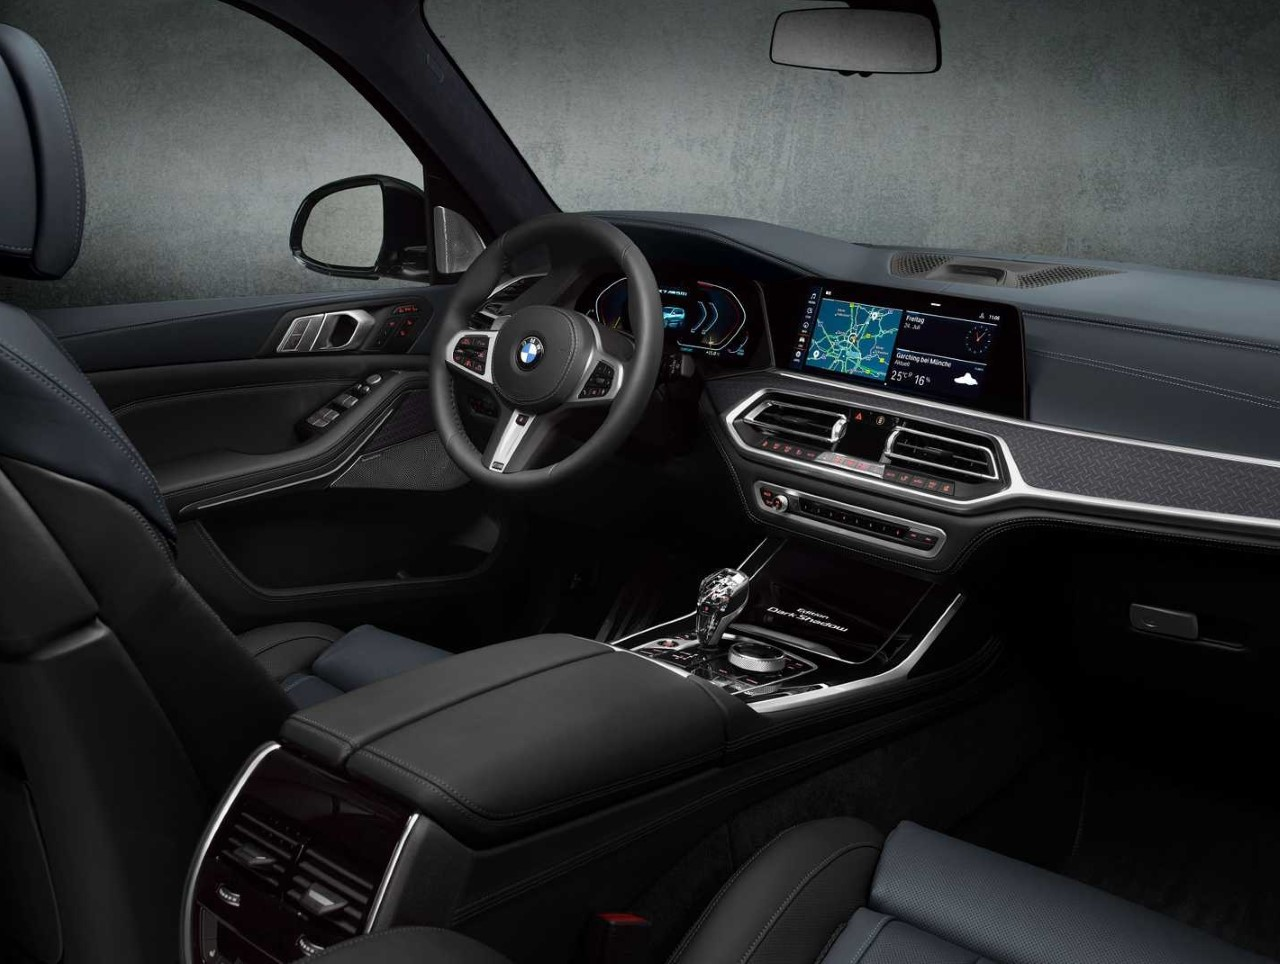 Thumbnail 2021 Bmw X7 Dark Shadow Edition Interior